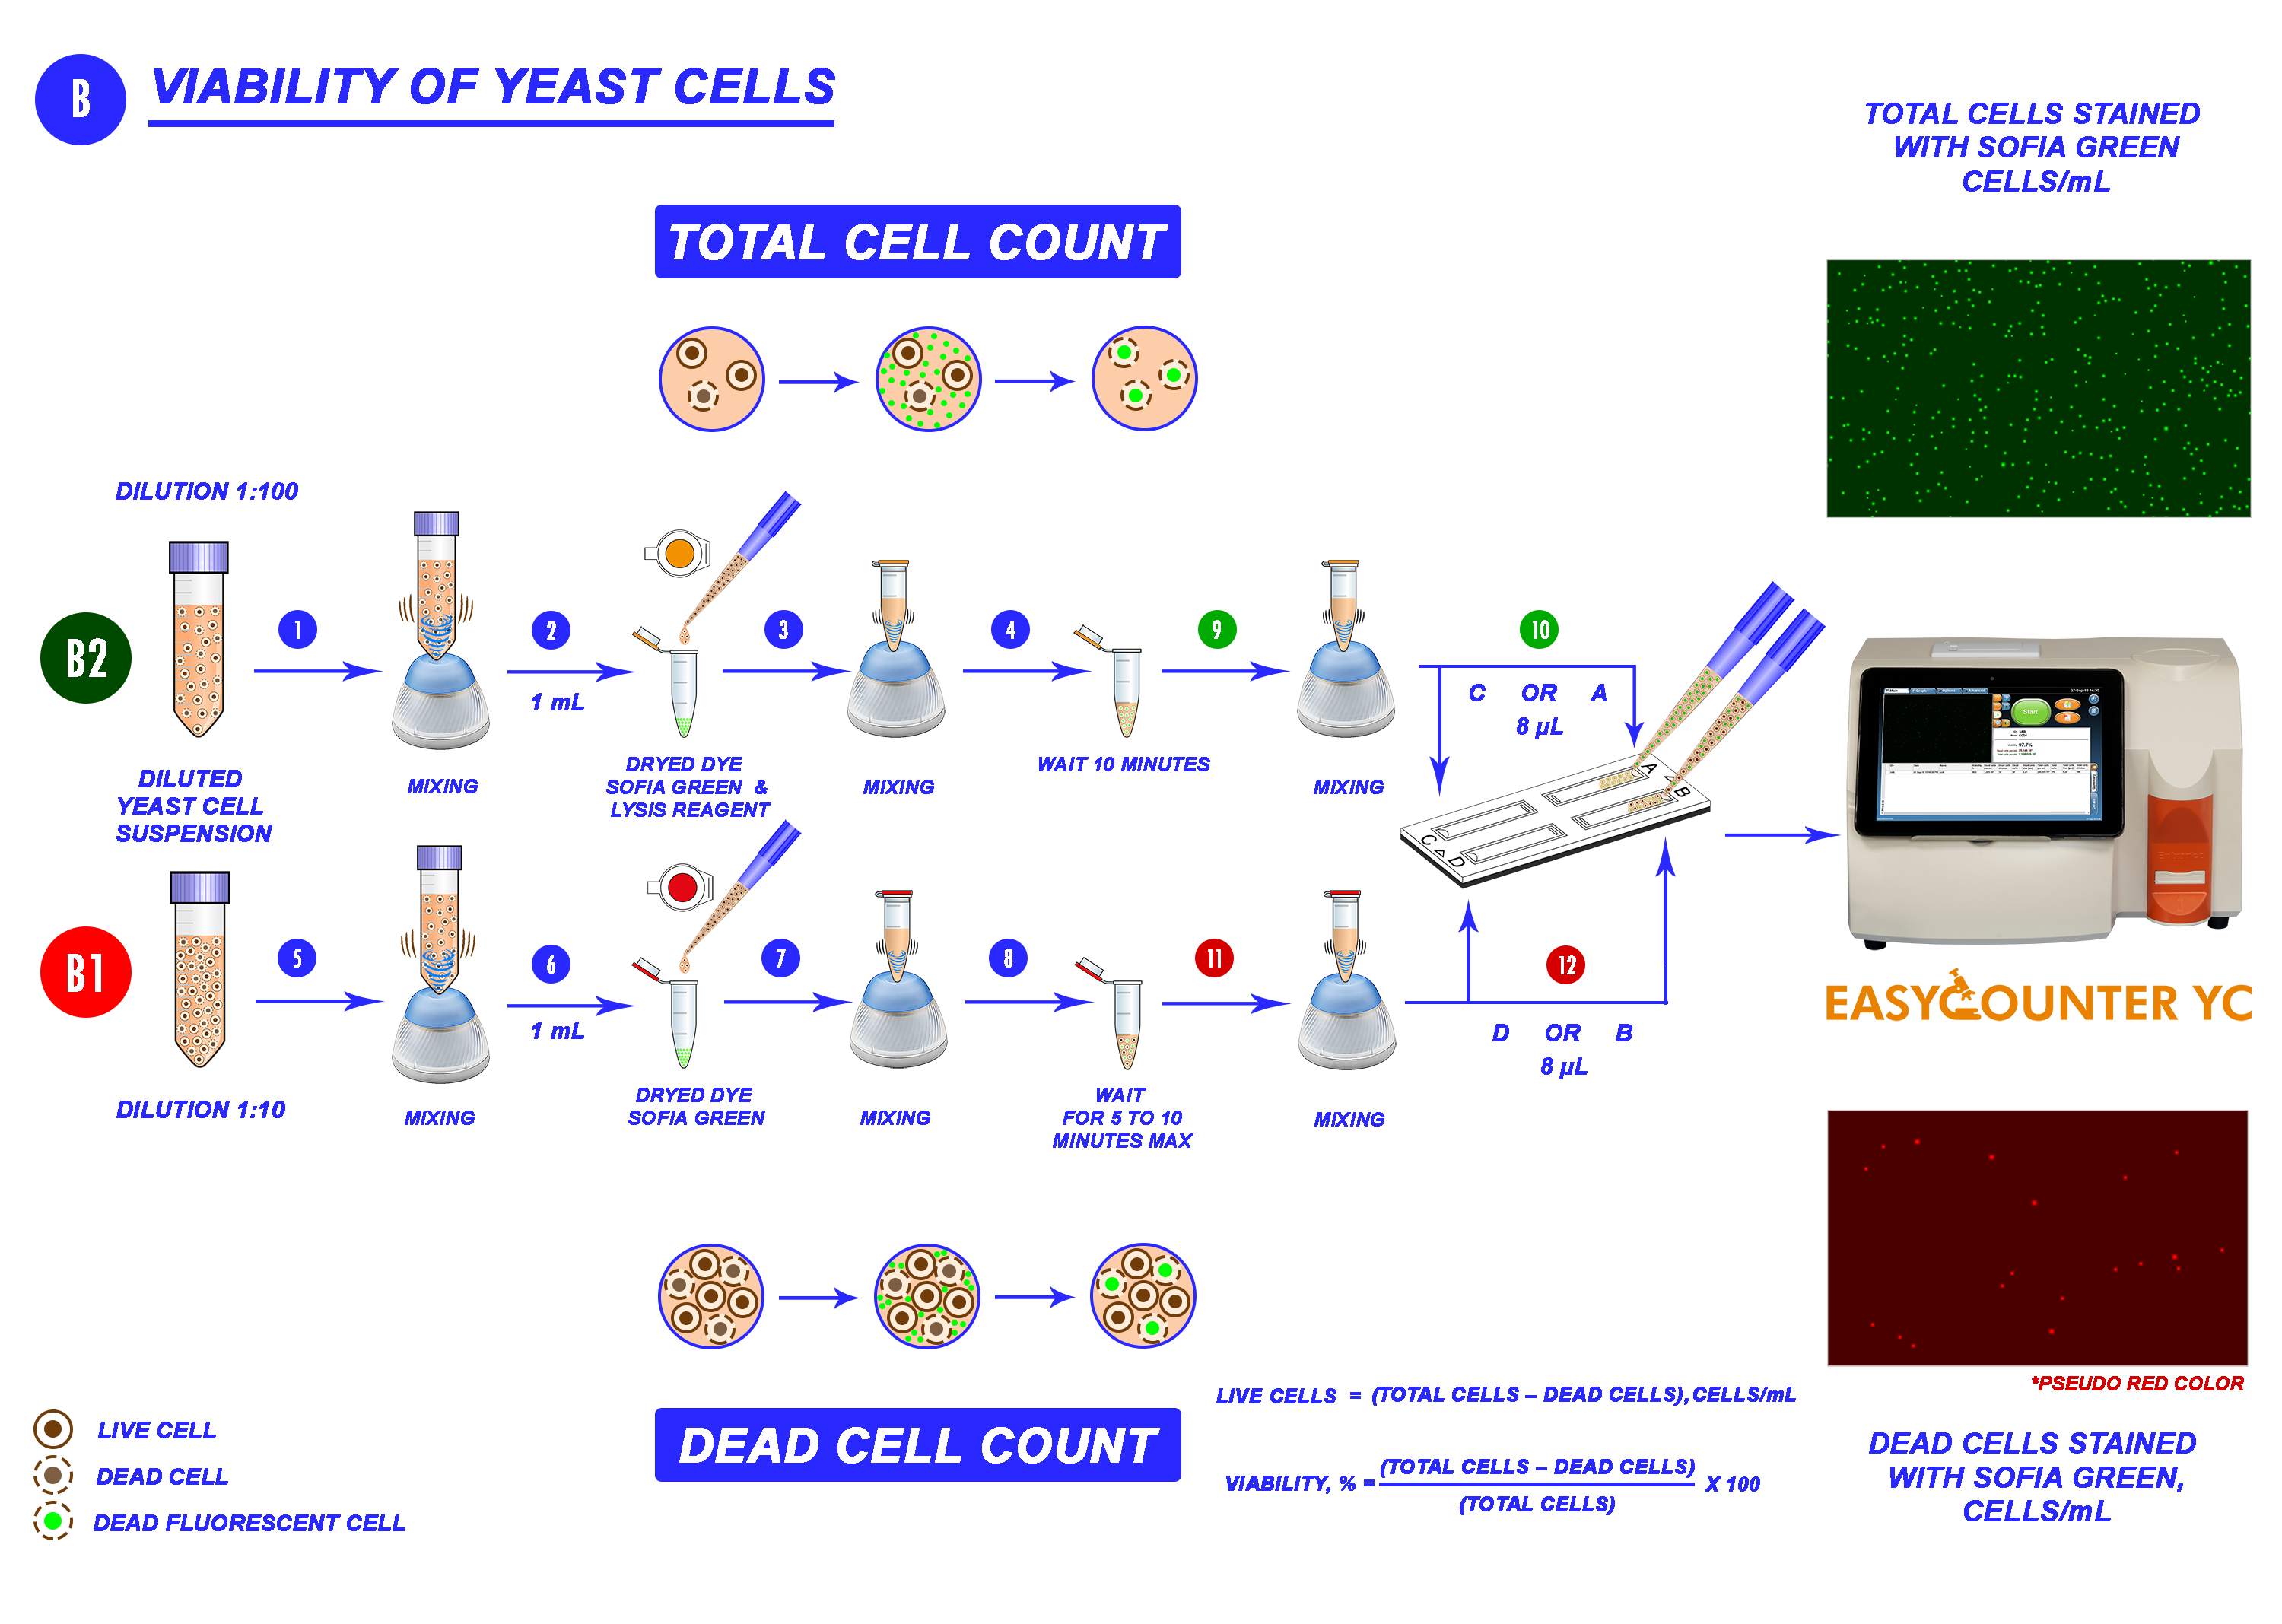 Viability of yeast cells